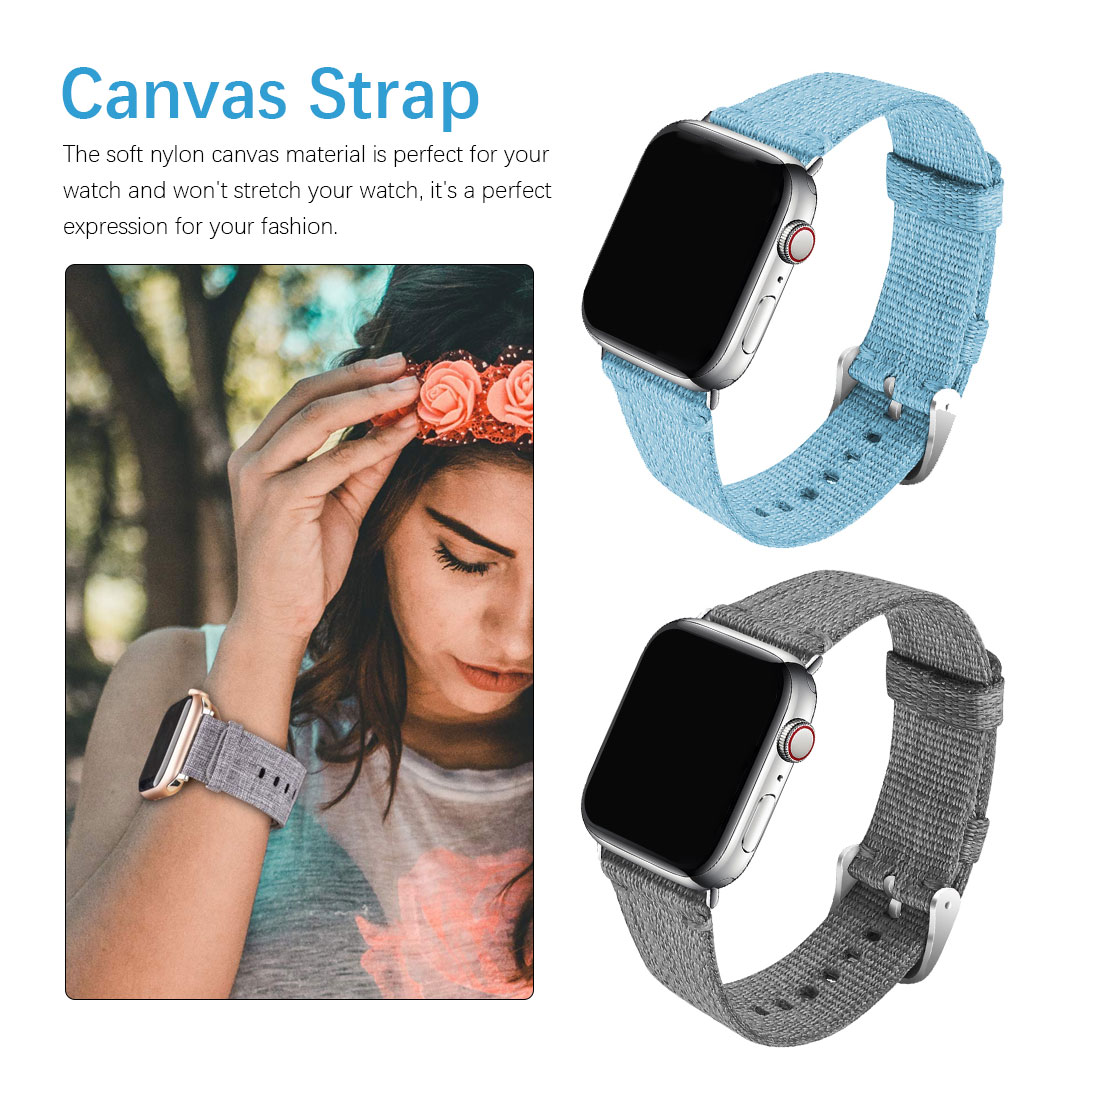 Watch Band Suitable For Apple Watch 4/3/2/1 Nylon Canvas Strap Replacement Wrist Strap Watch Accessories boys girls strap